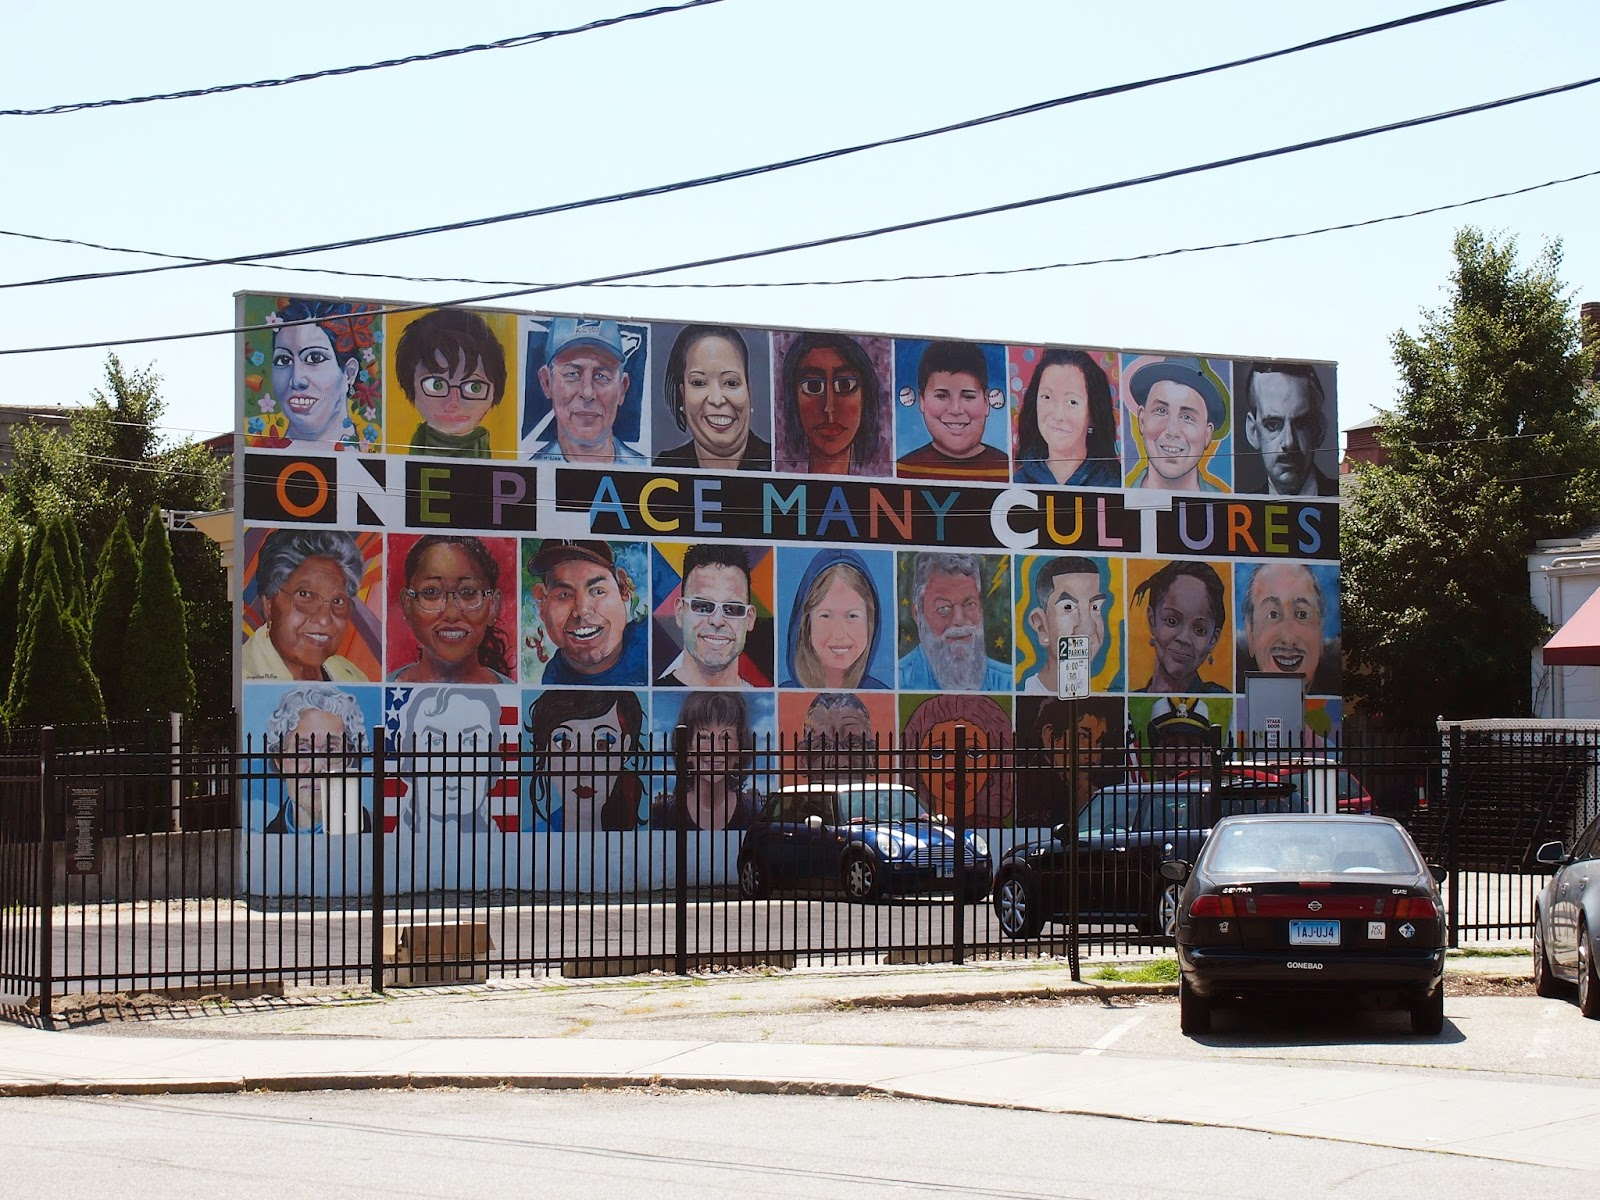 A mural of different nationalities